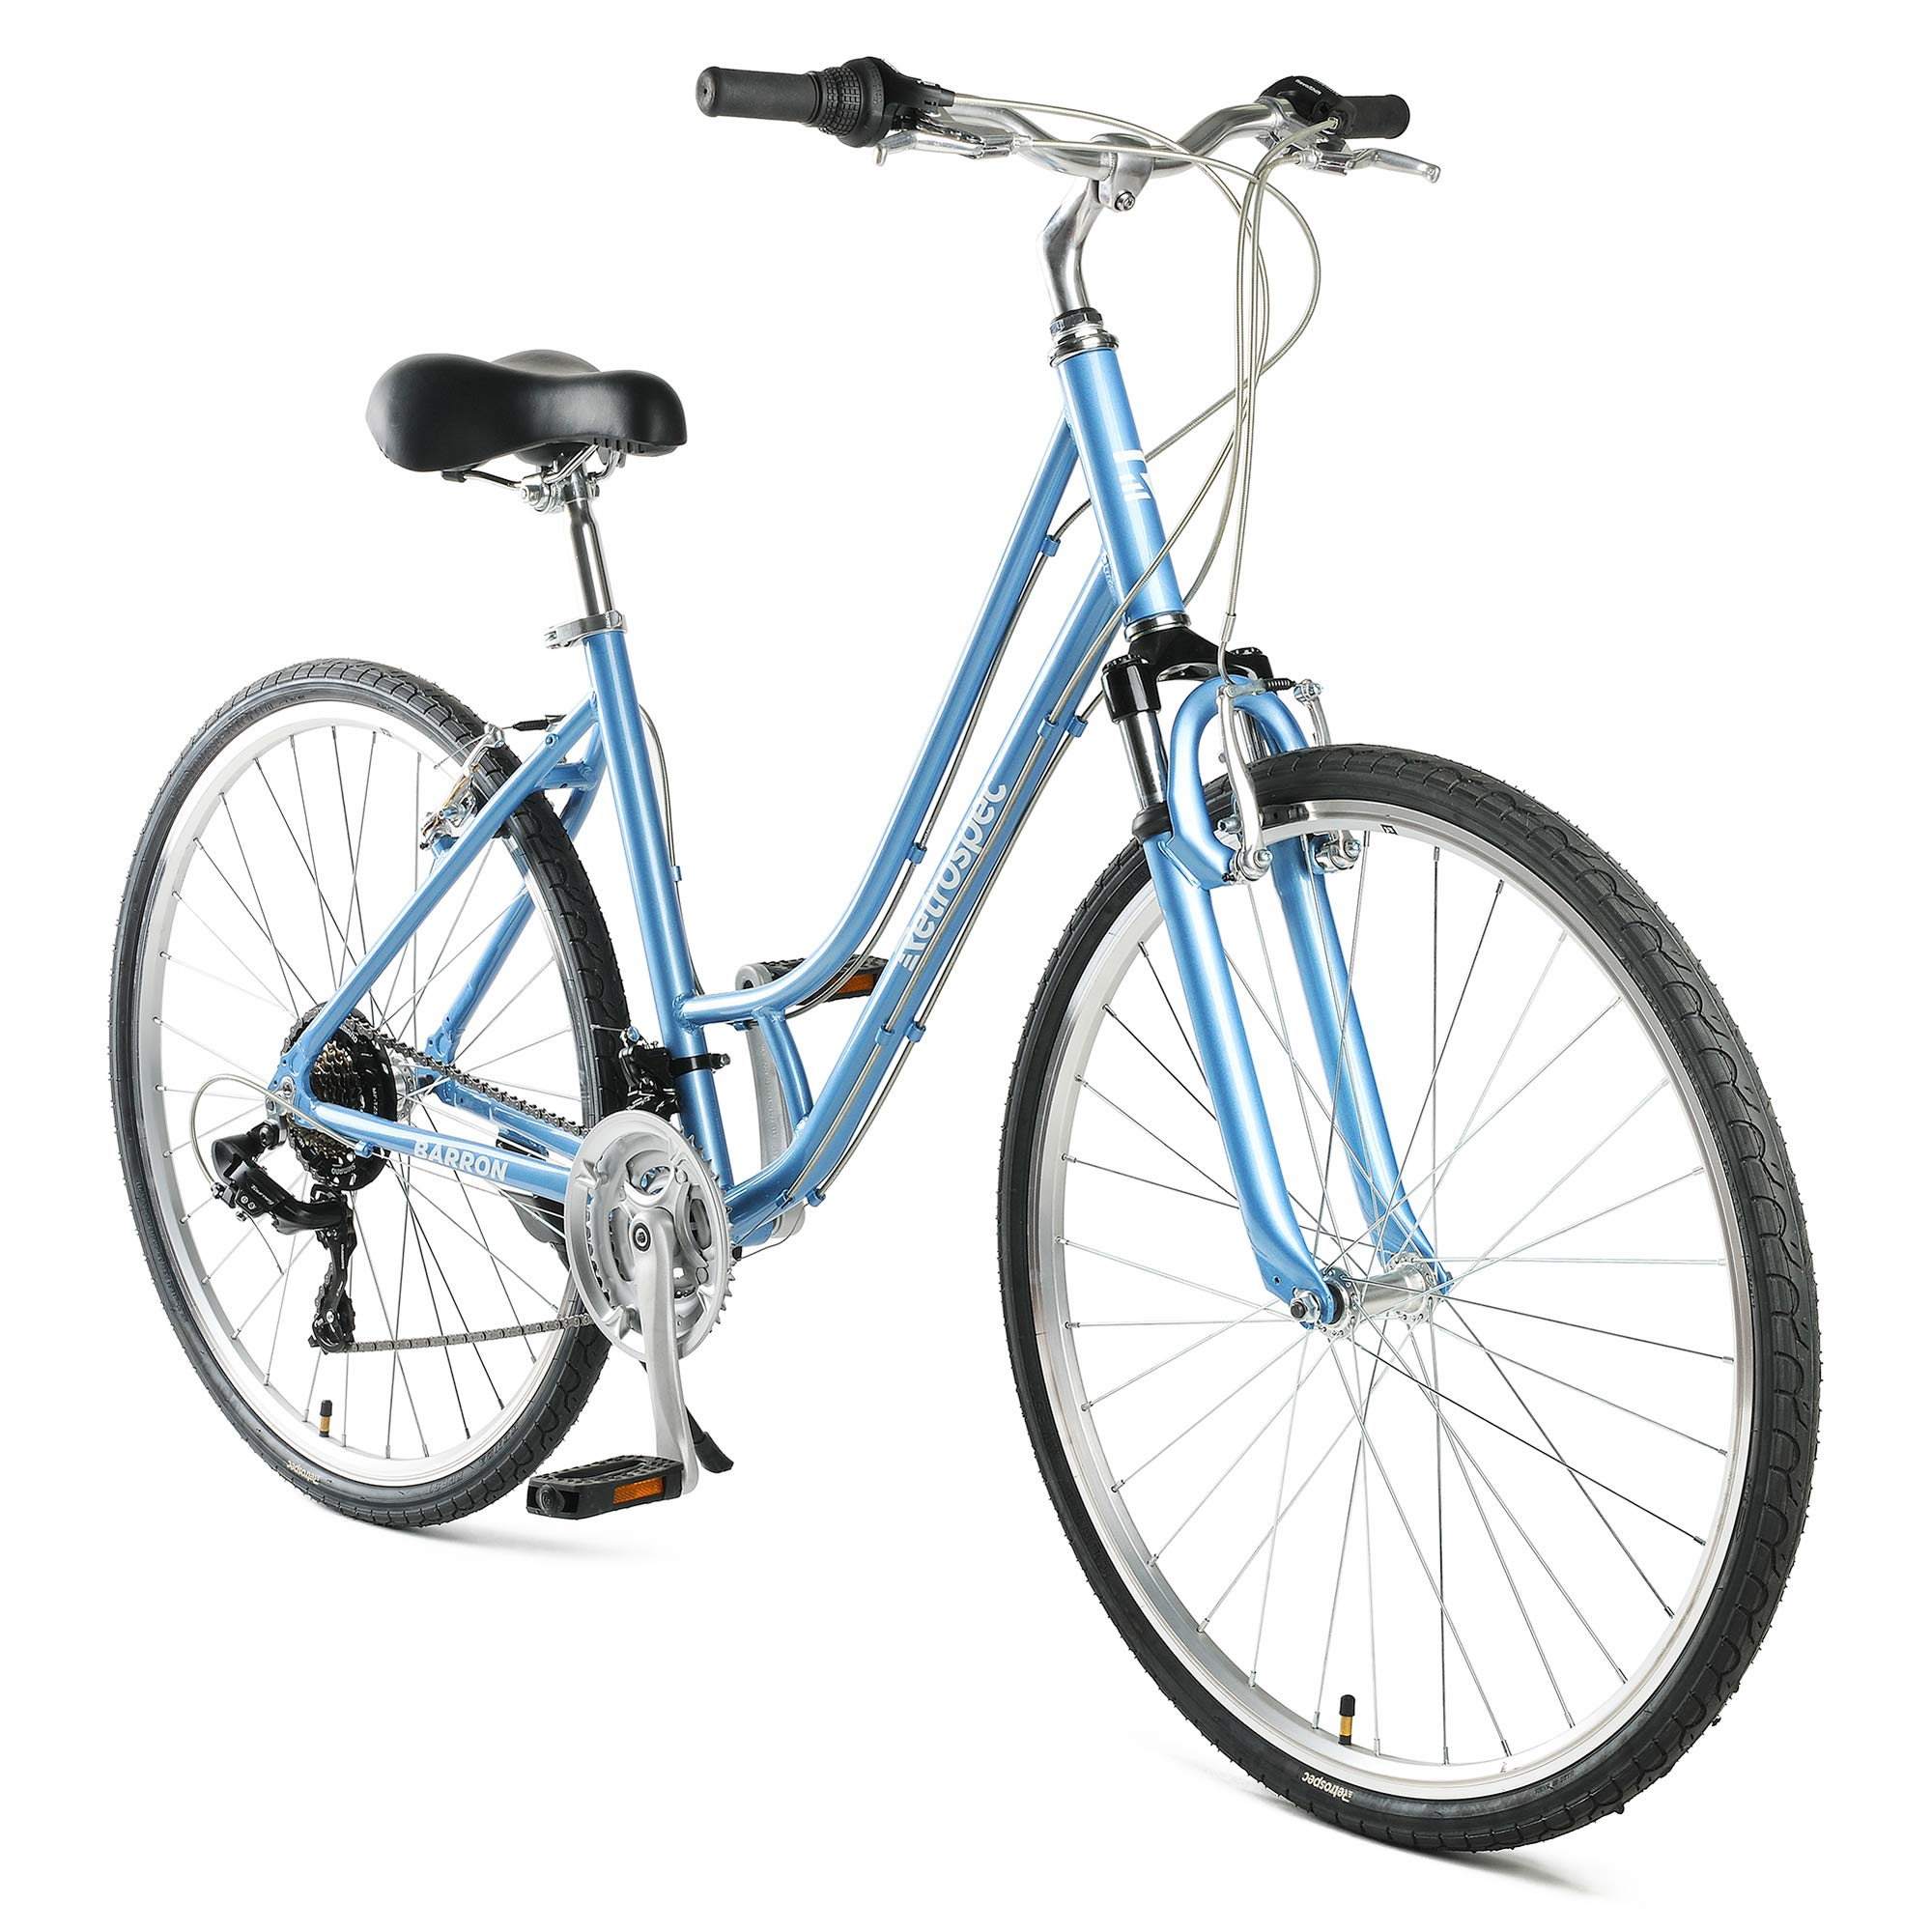 Retrospec Barron Comfort Hybrid Bike 21-Speed Step-Through with Front Suspension and 700c Wheels with Multi-Surface Tires; 16'' Small, Glacier Blue by Retrospec